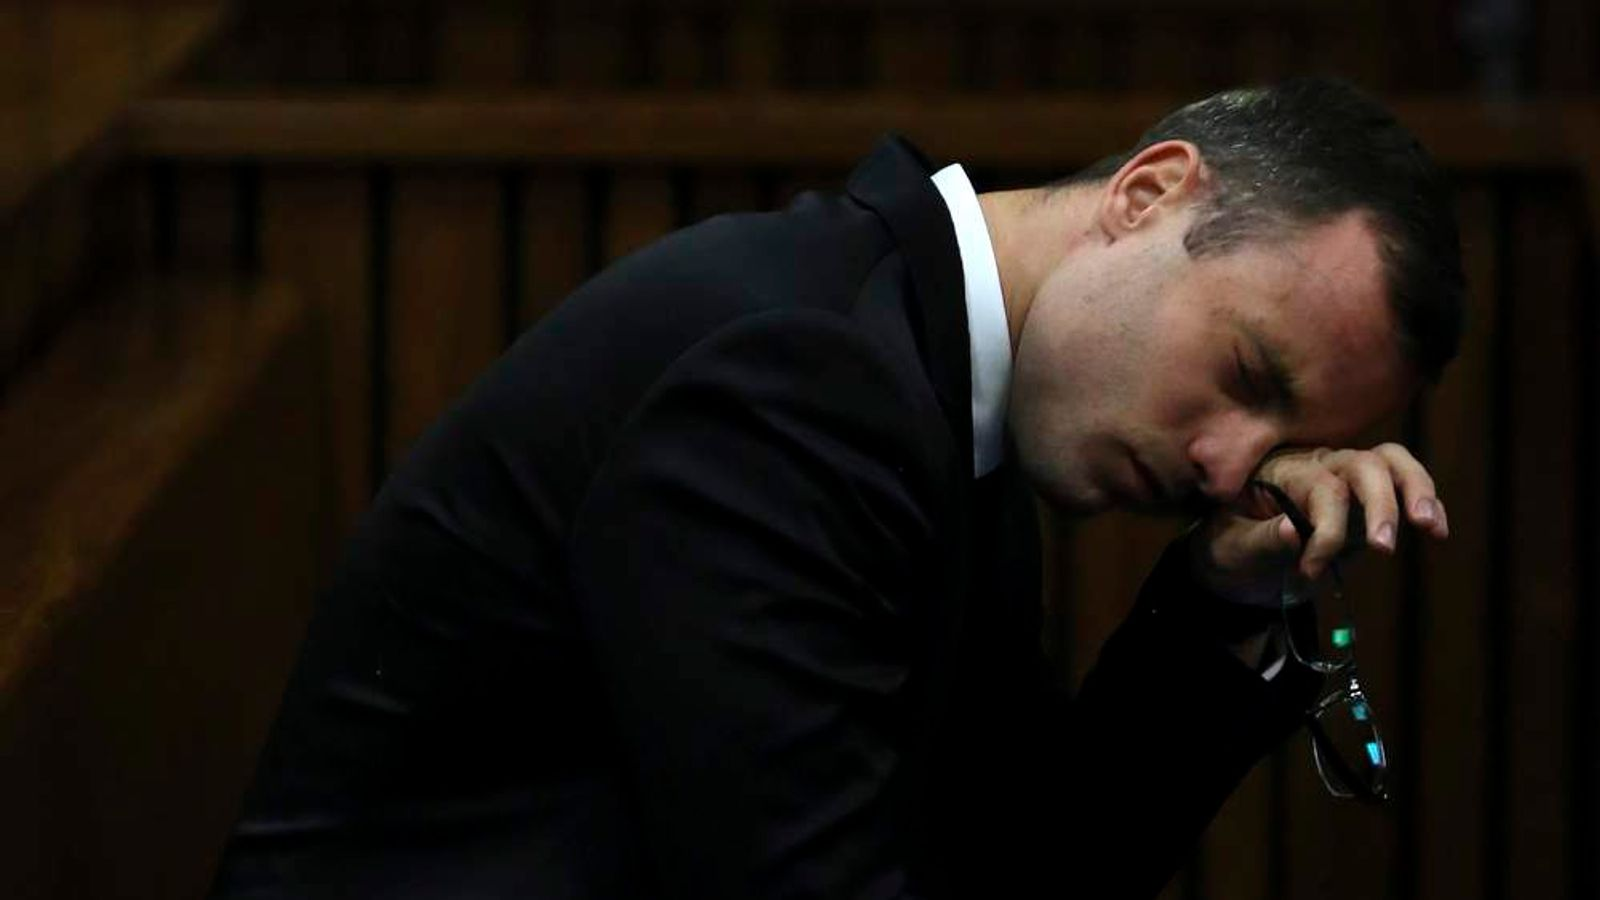 Oscar Pistorius attends his trial at the high court in Pretoria